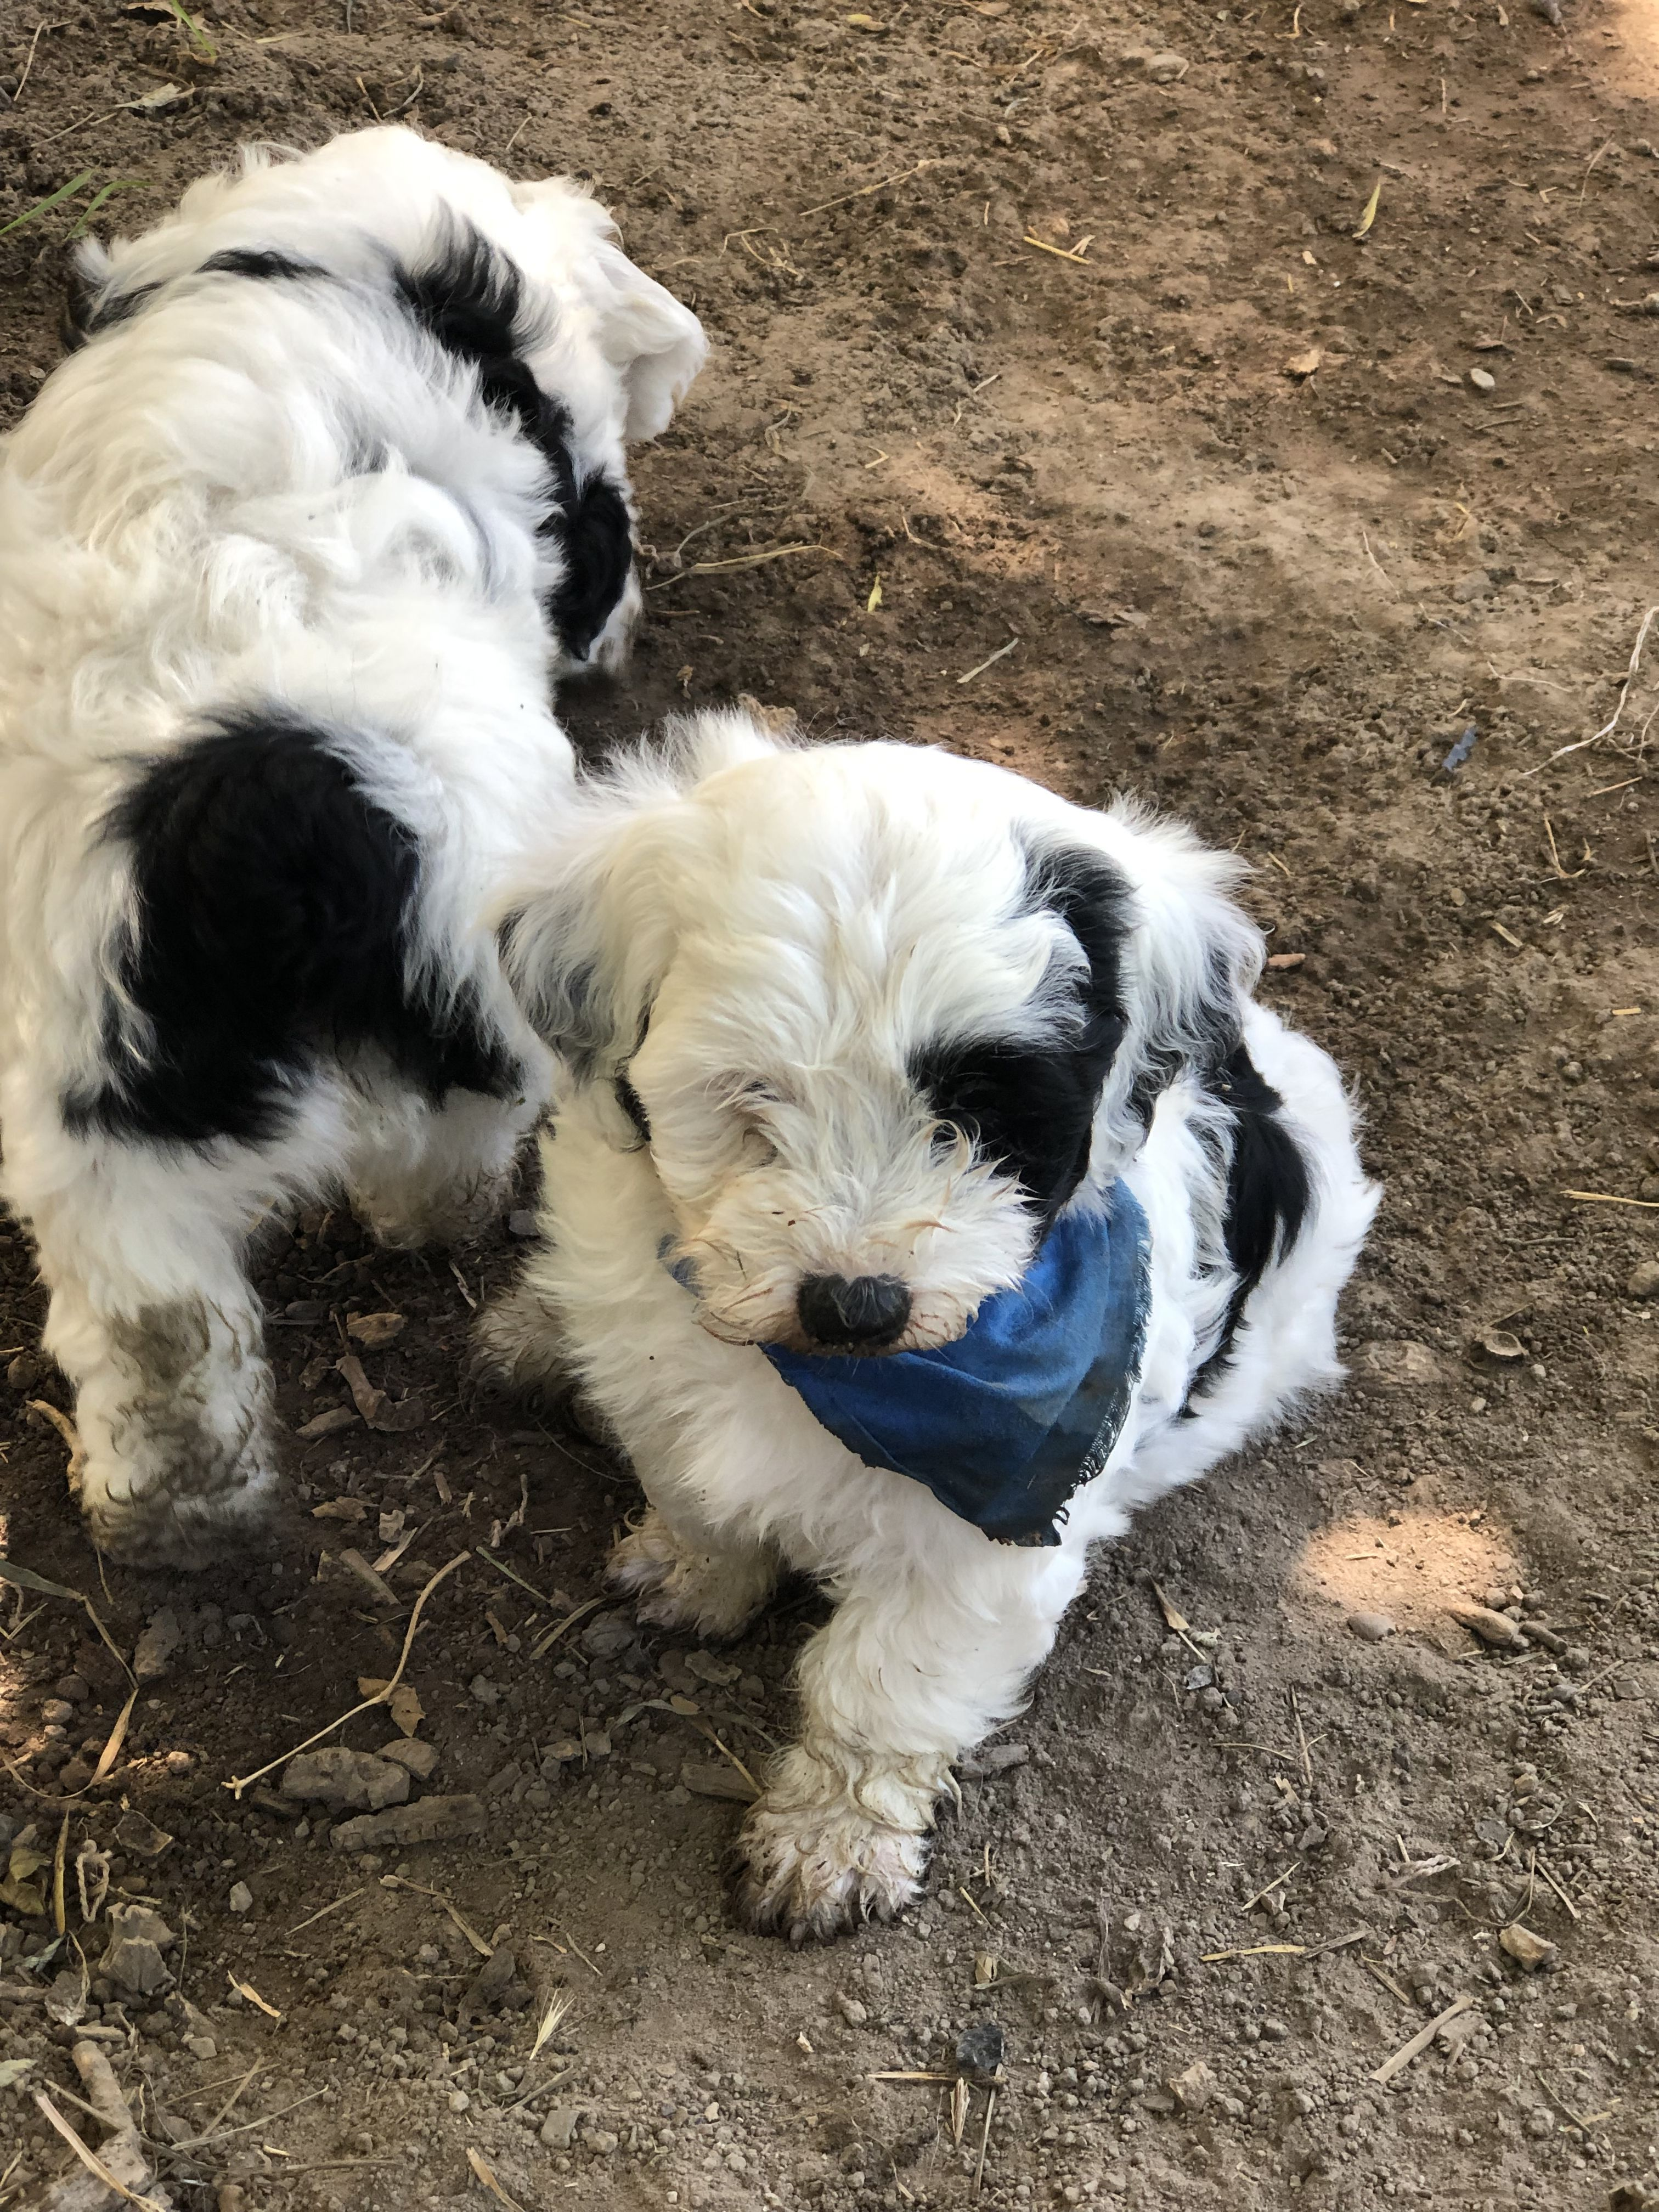 Mini Sheepadoodle Puppies Are Staying Cool In The Wet Mud Sheepadoodle Puppy Puppy Snuggles Goldendoodle Puppy